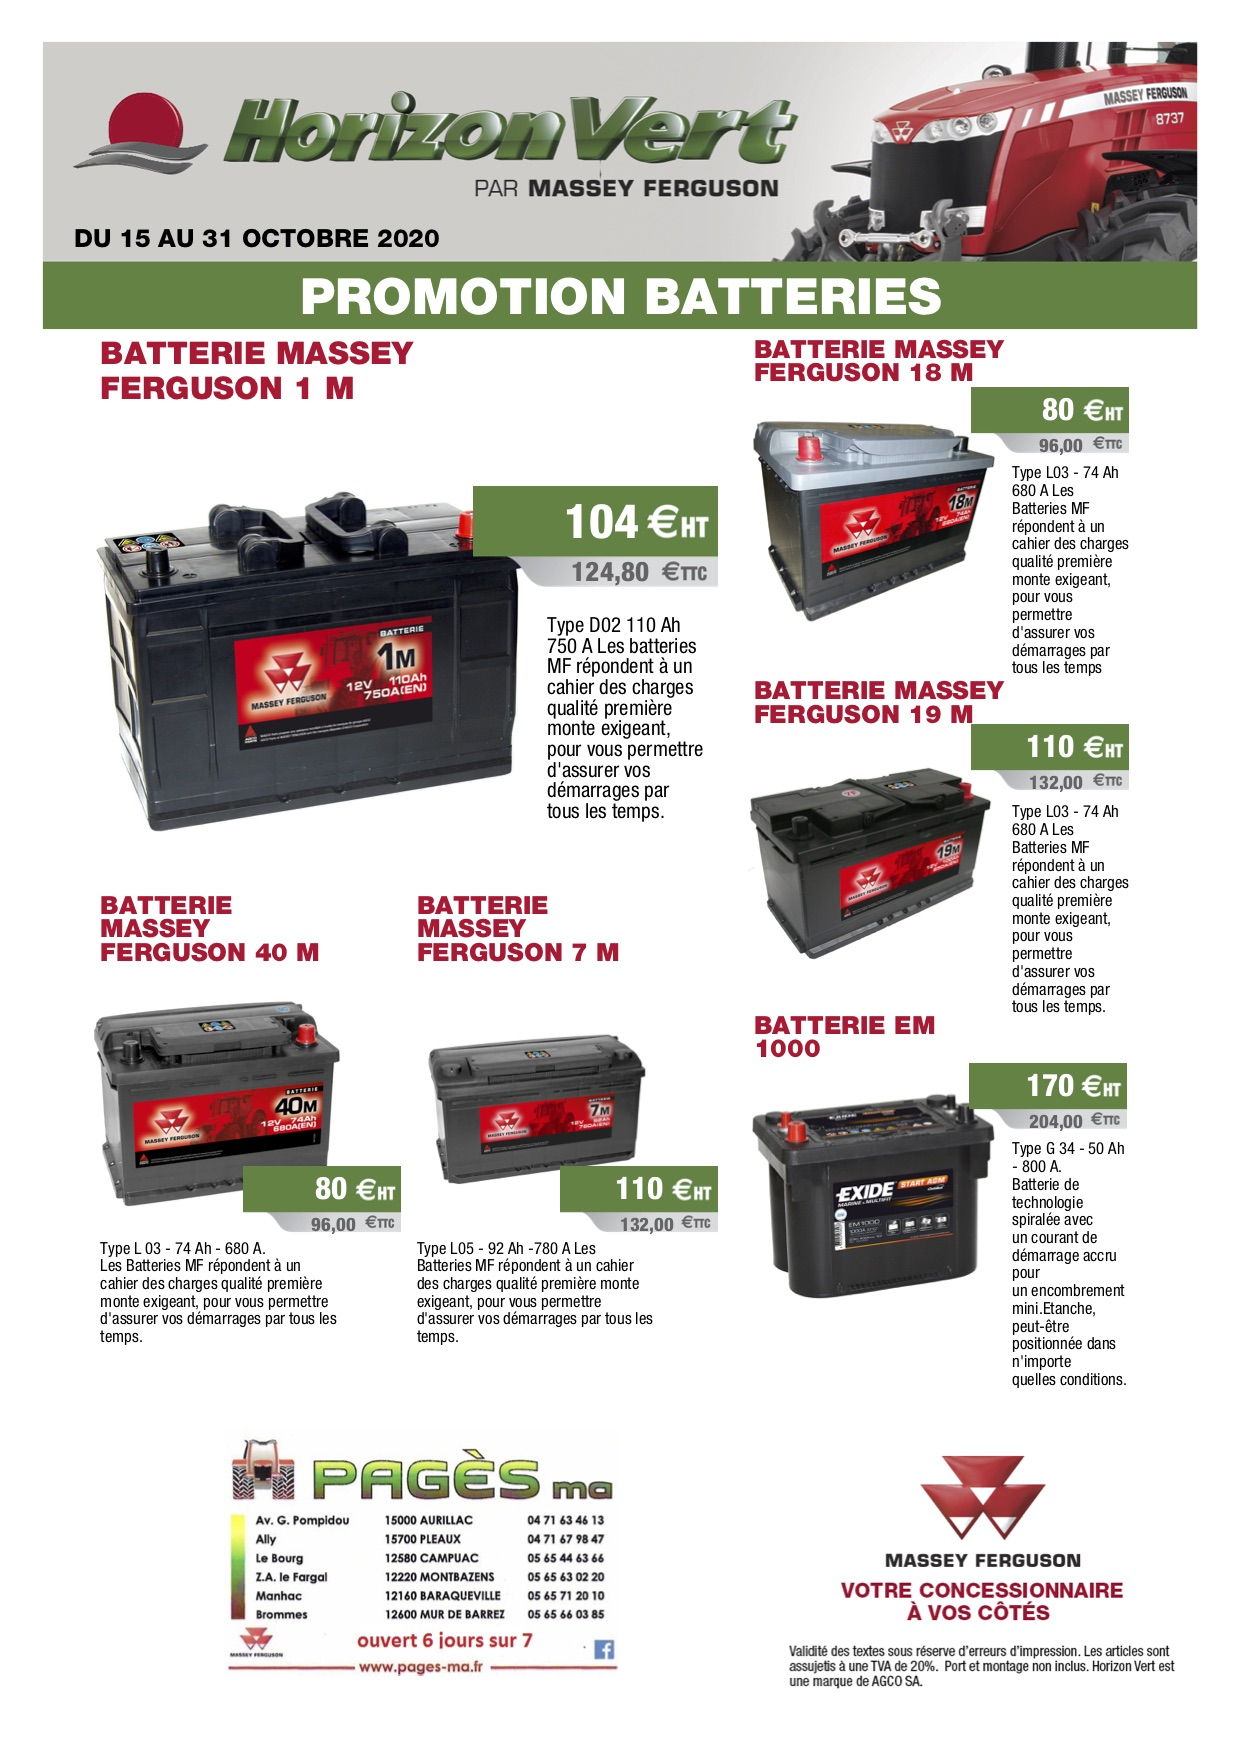 Promotion batteries